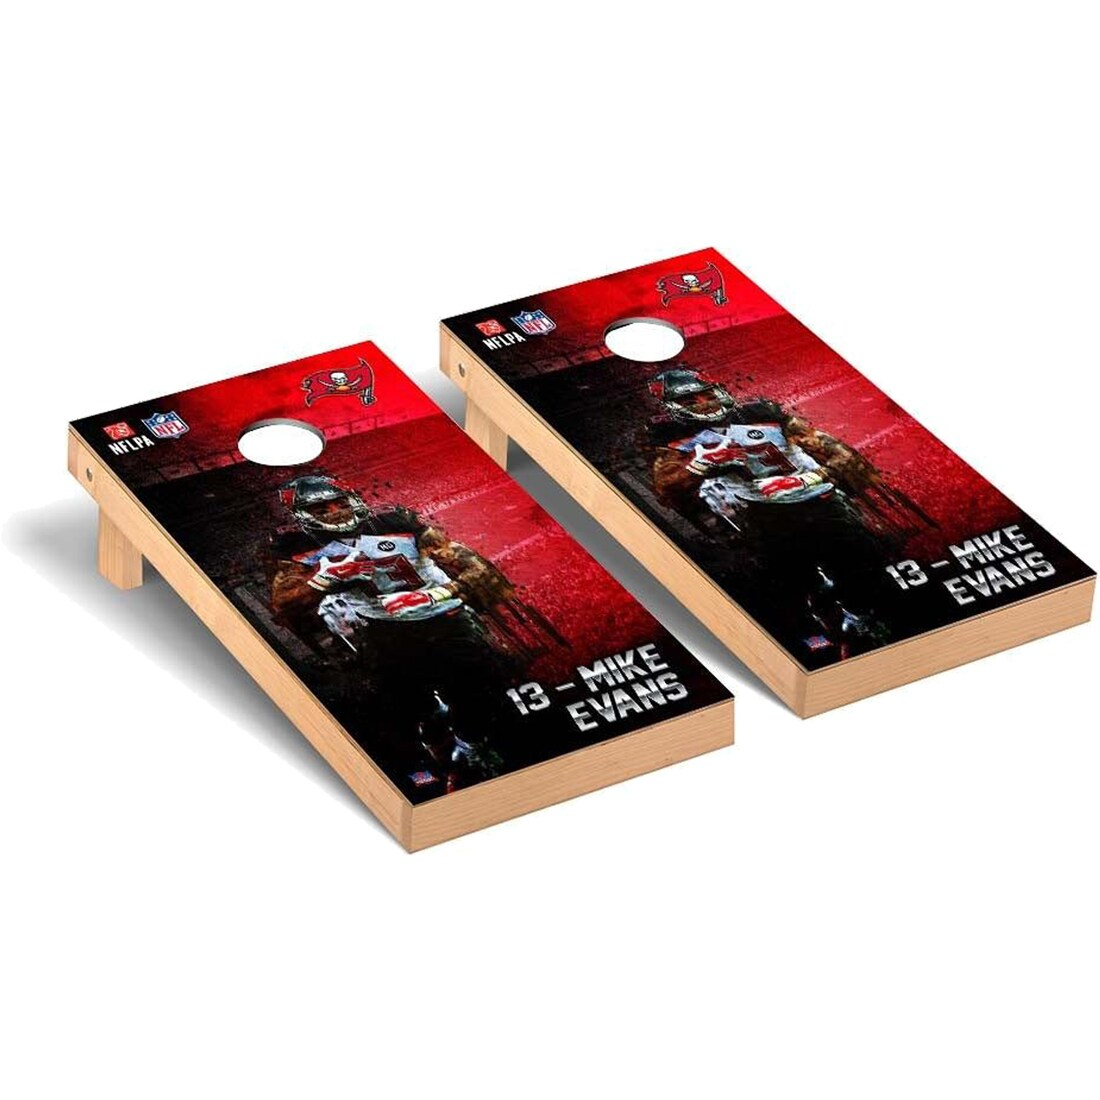 Mike Evans Tampa Bay Buccaneers 2' x 4' NFLPA Player Cornhole Board Tailgate Toss Set